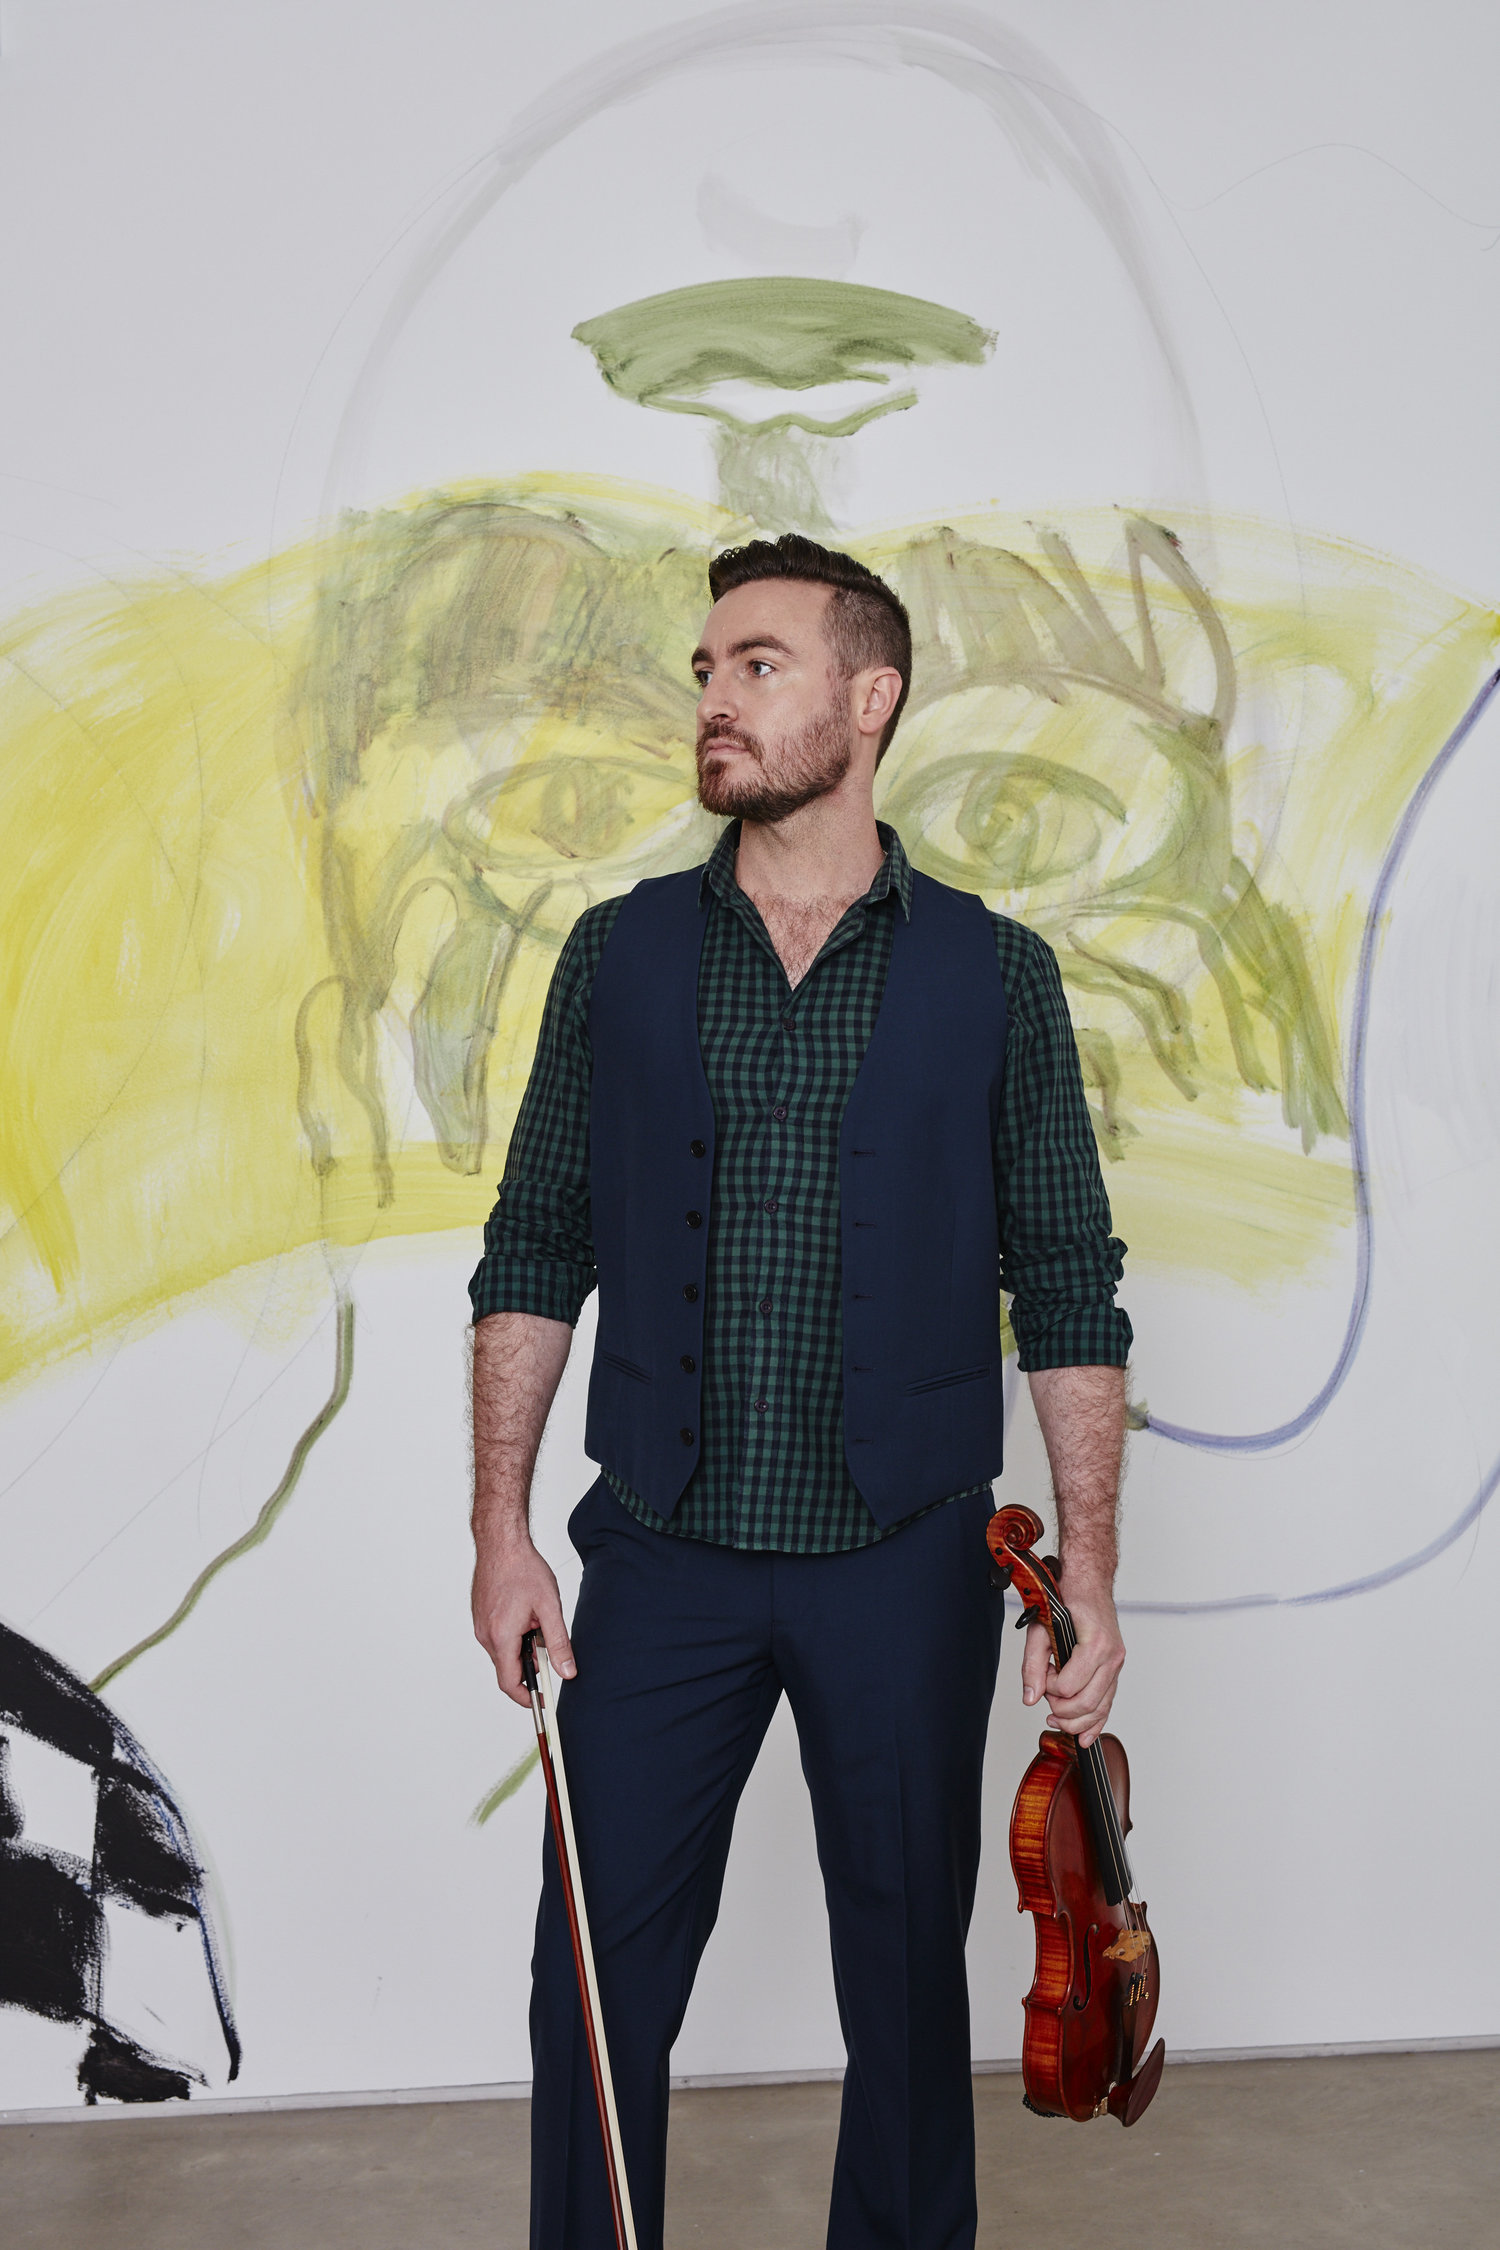 Violinist Dan Russell launches the Phoenix Collective